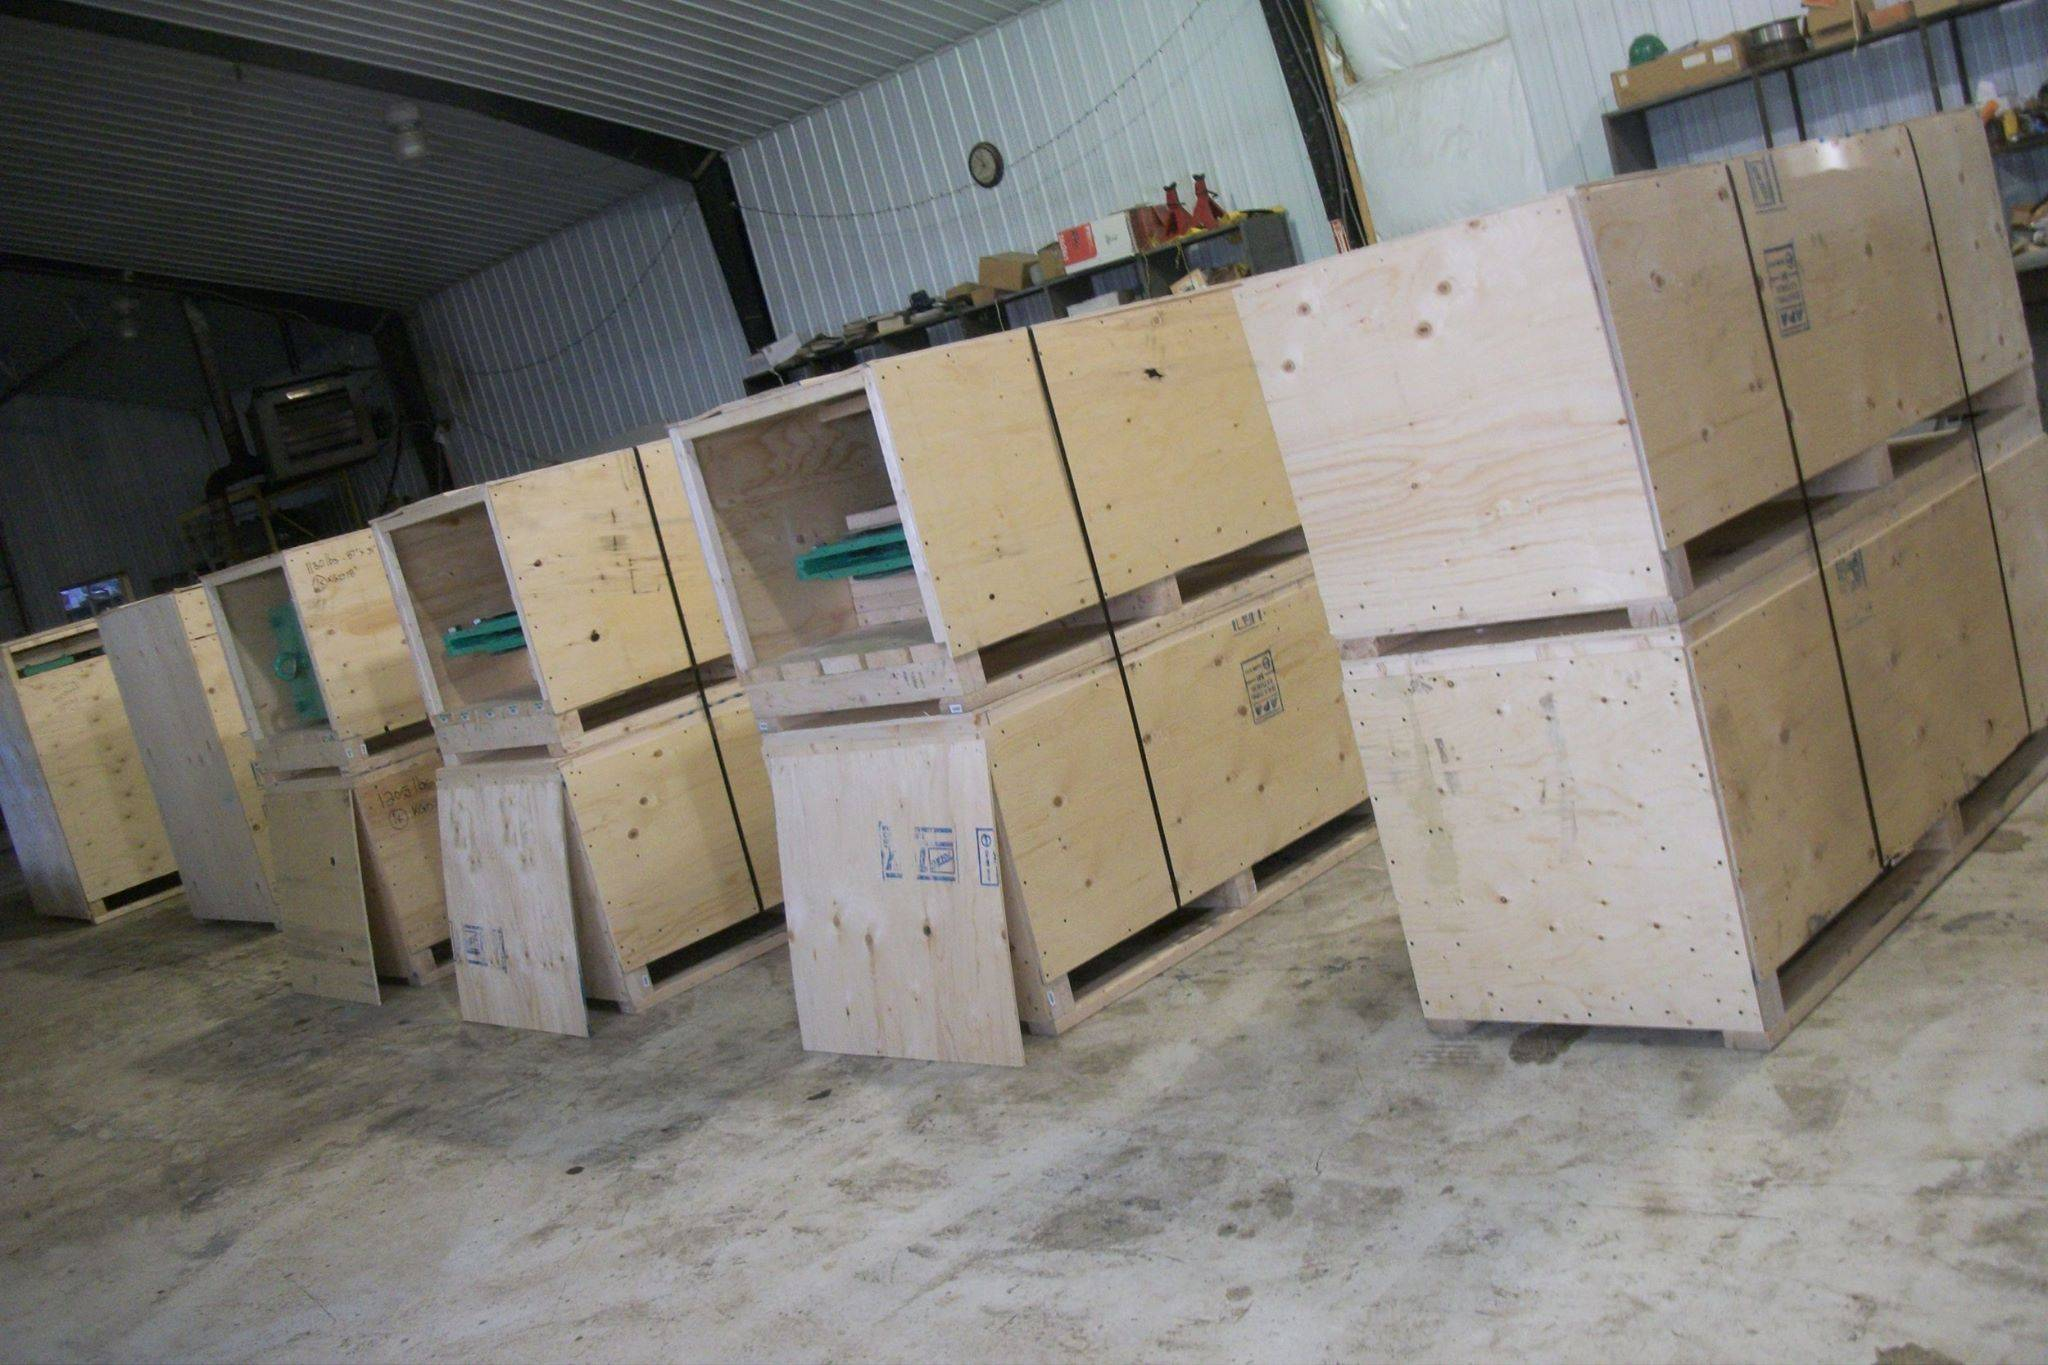 Crated valves